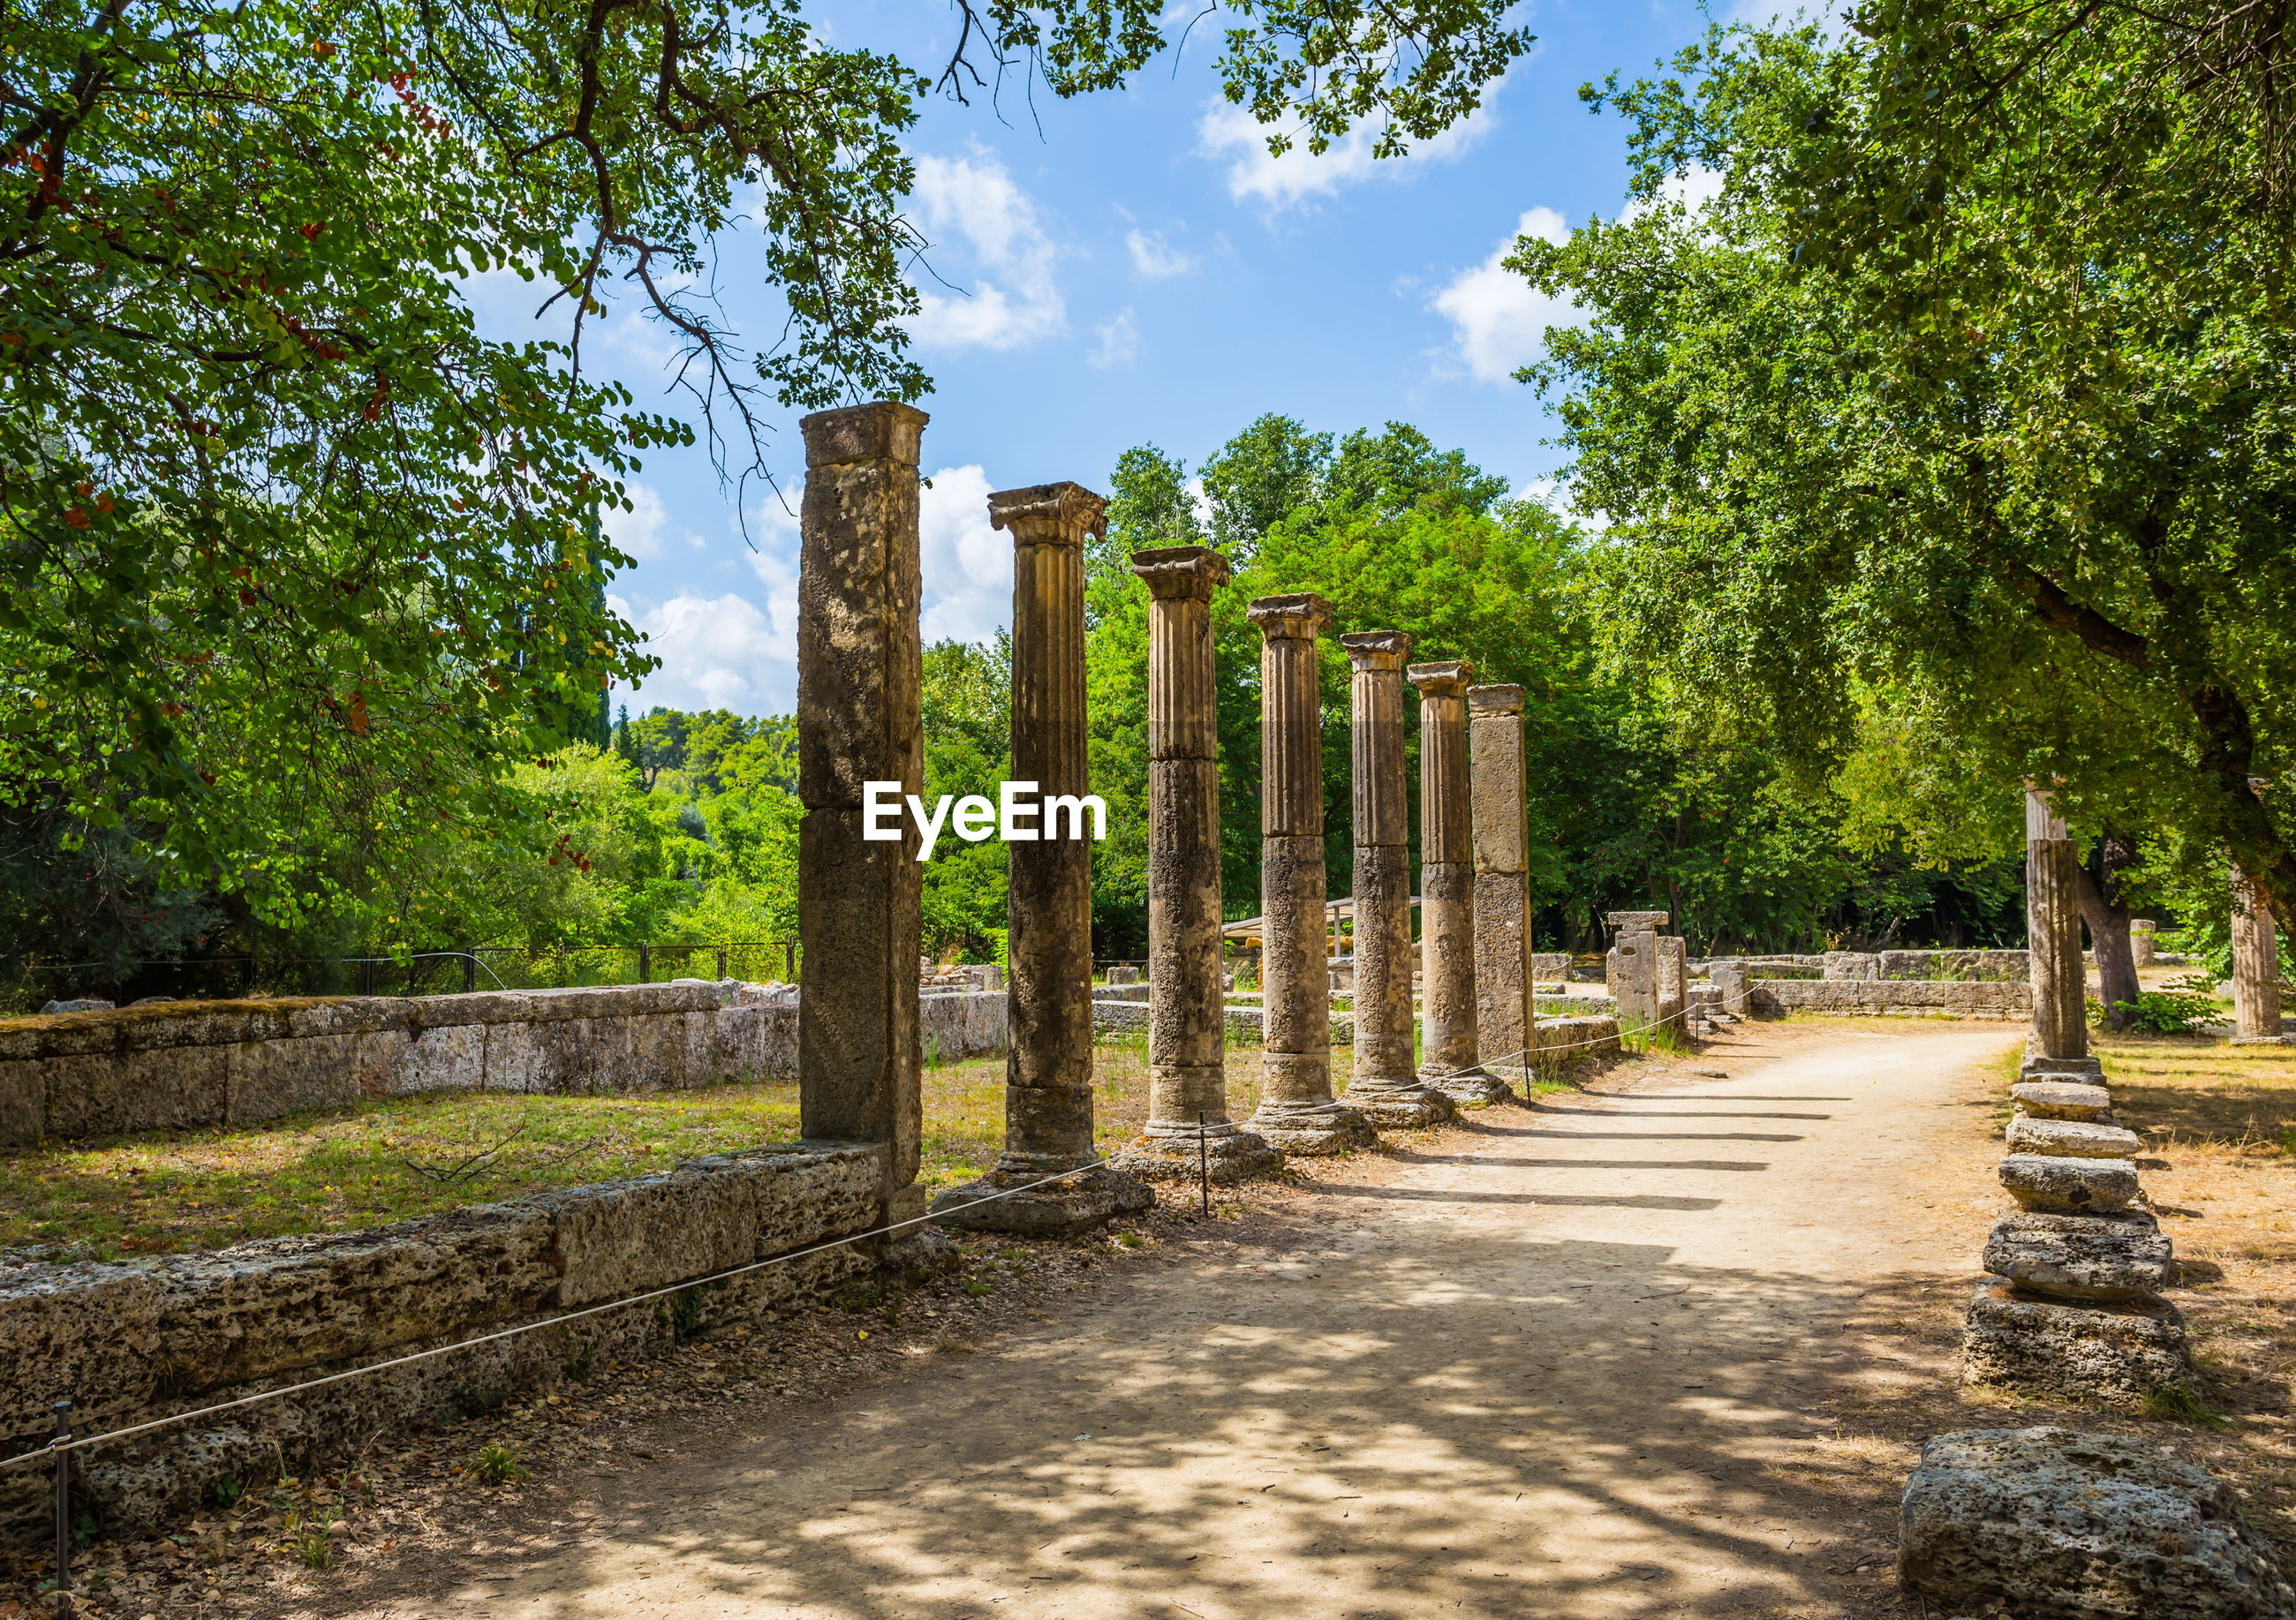 Ionic columns of palaestra in ancient olympia, greece